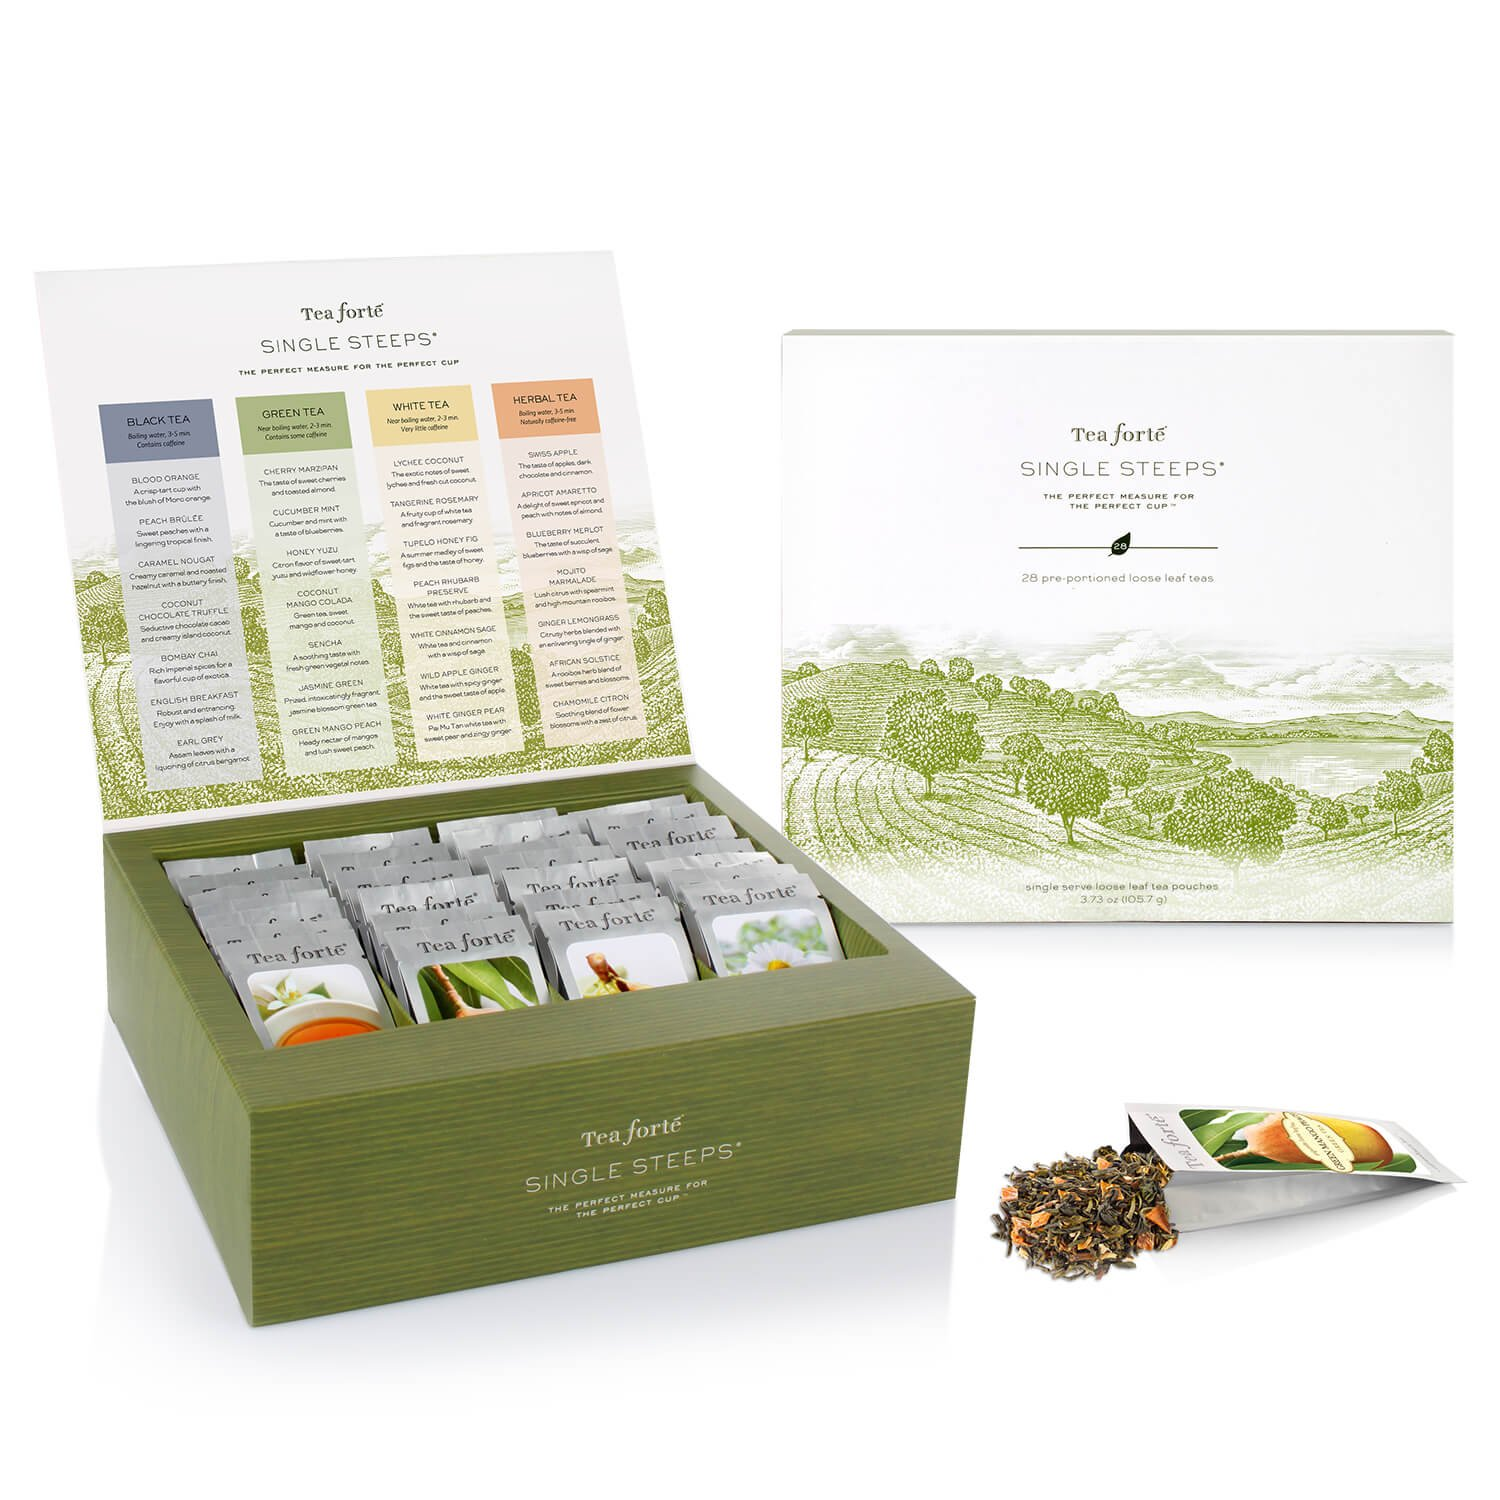 Tea Forté SINGLE STEEPS Loose Tea Sampler, Assorted Variety TEA CHEST, 28 Different Single Serve Pouches - Black Tea, Green Tea, White Tea, Herbal Tea